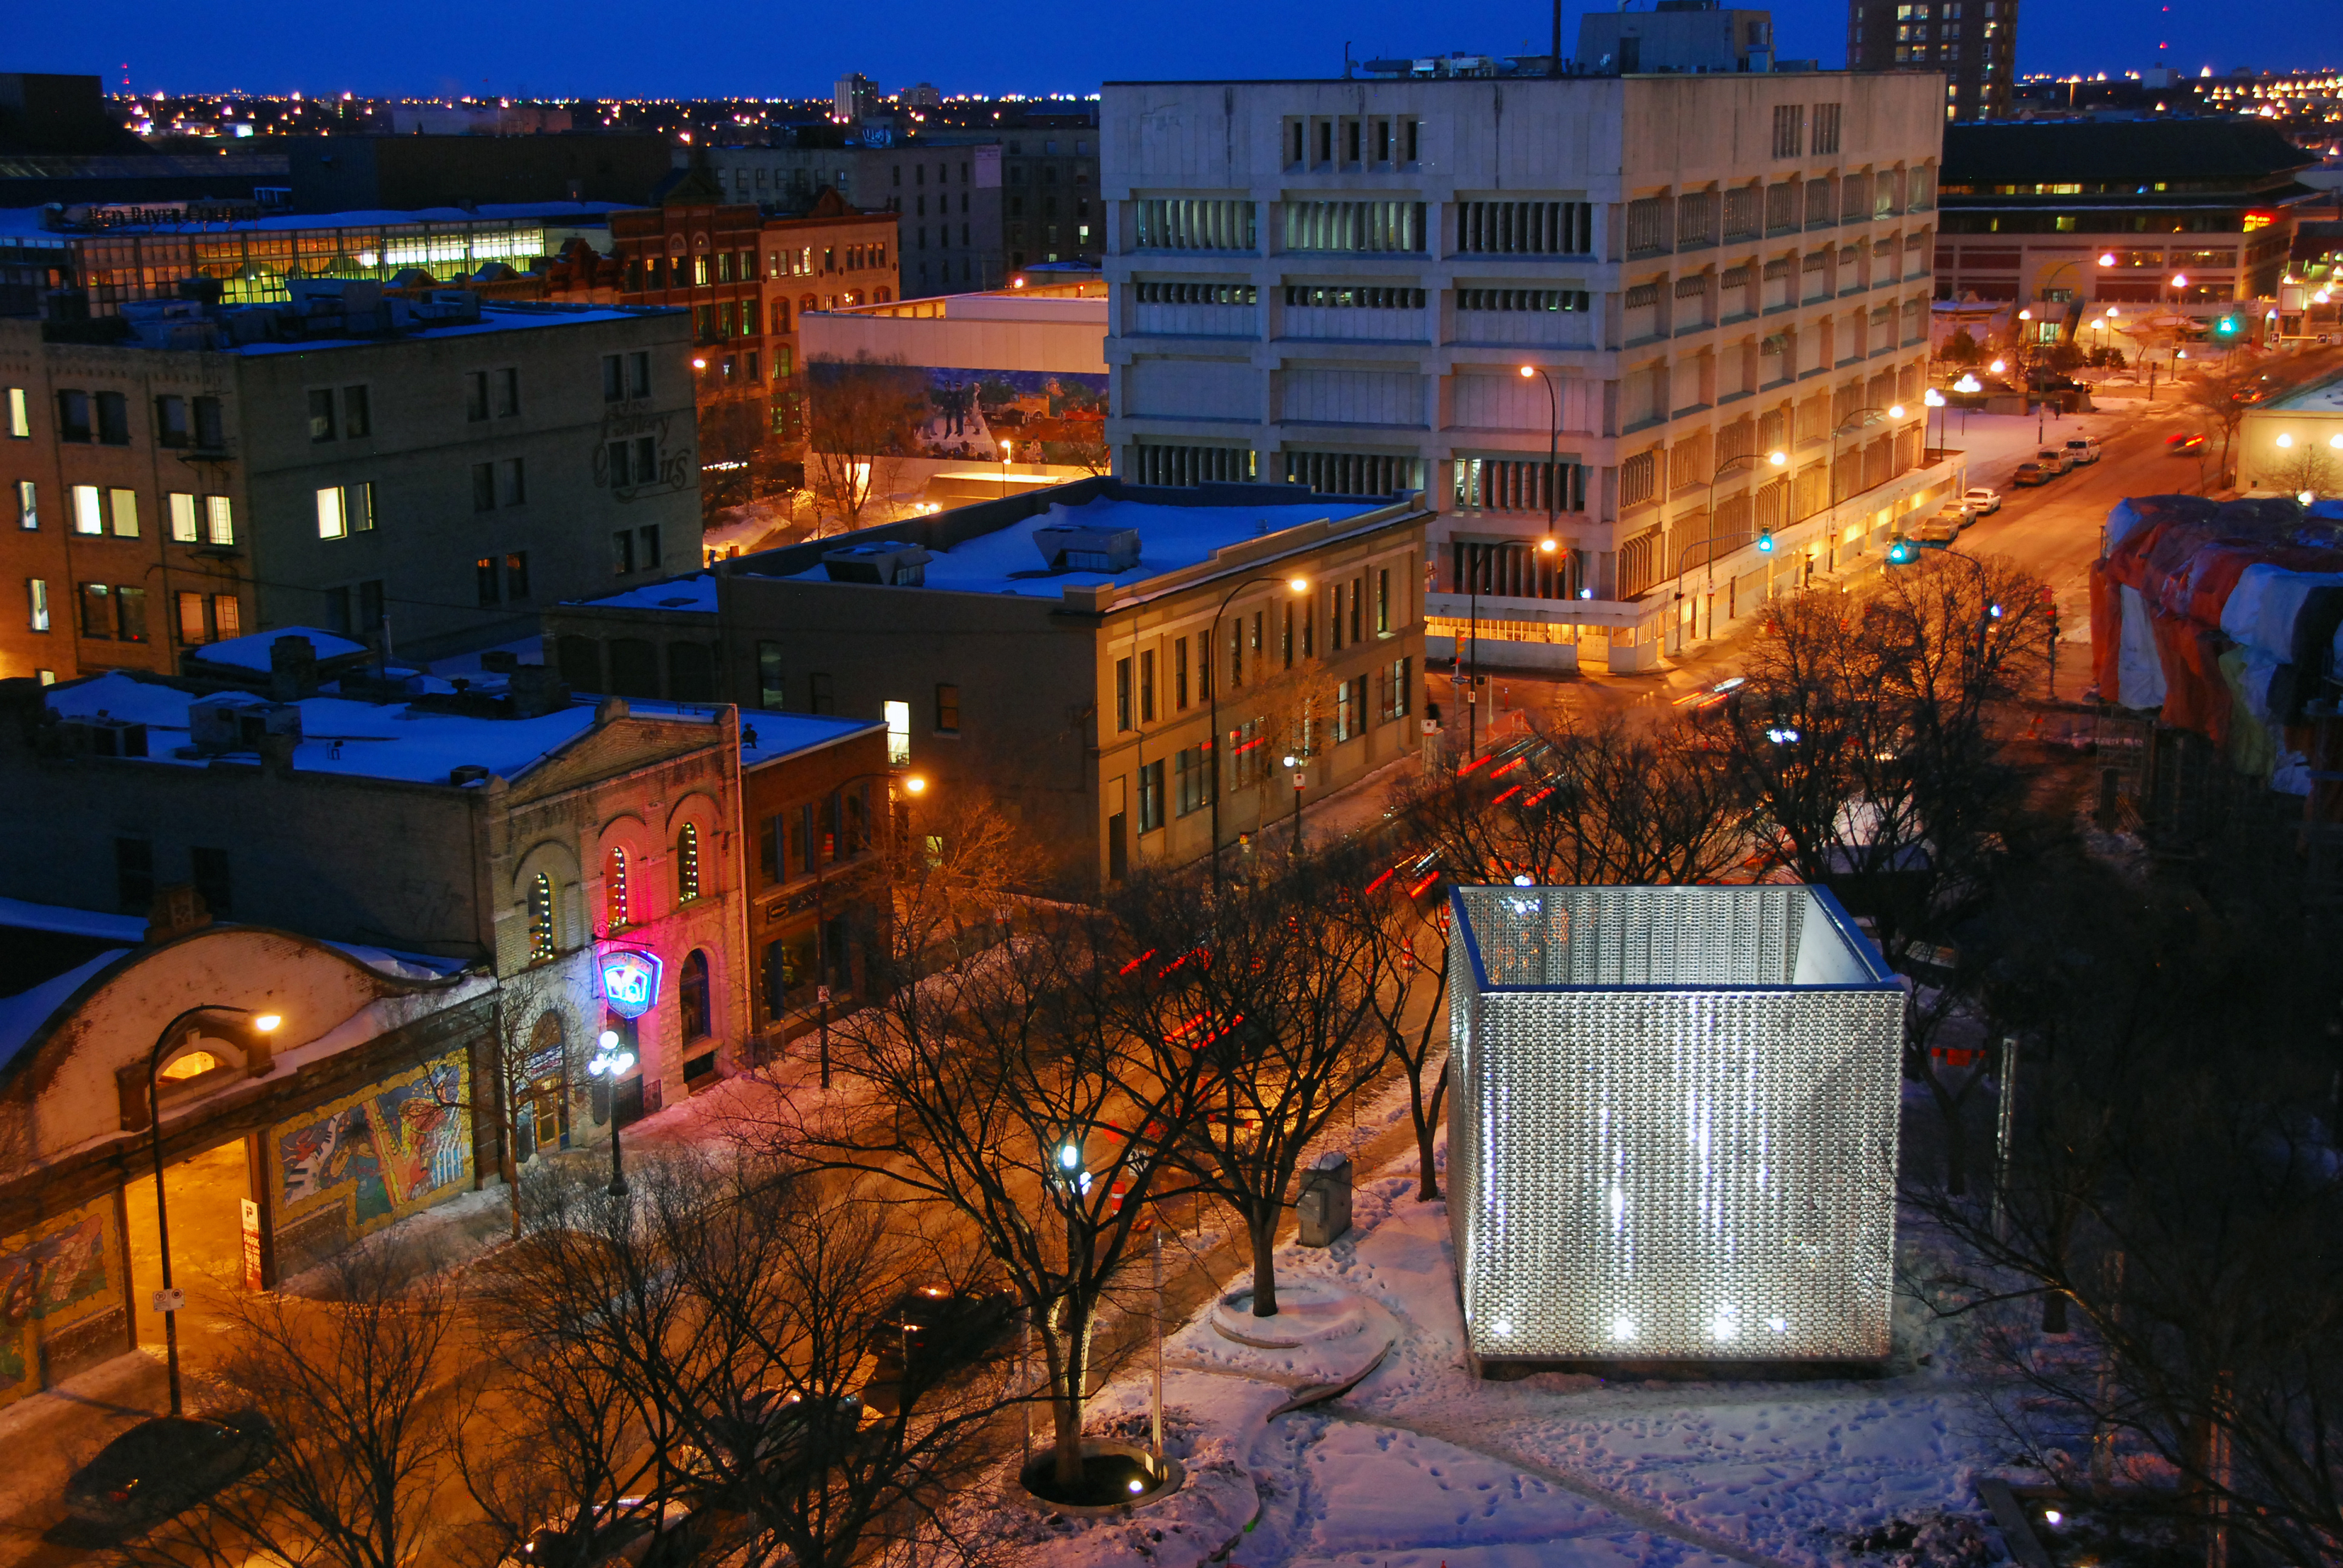 The OMS Stage in downtown Winnipeg doubles as an enigmatic art installation.